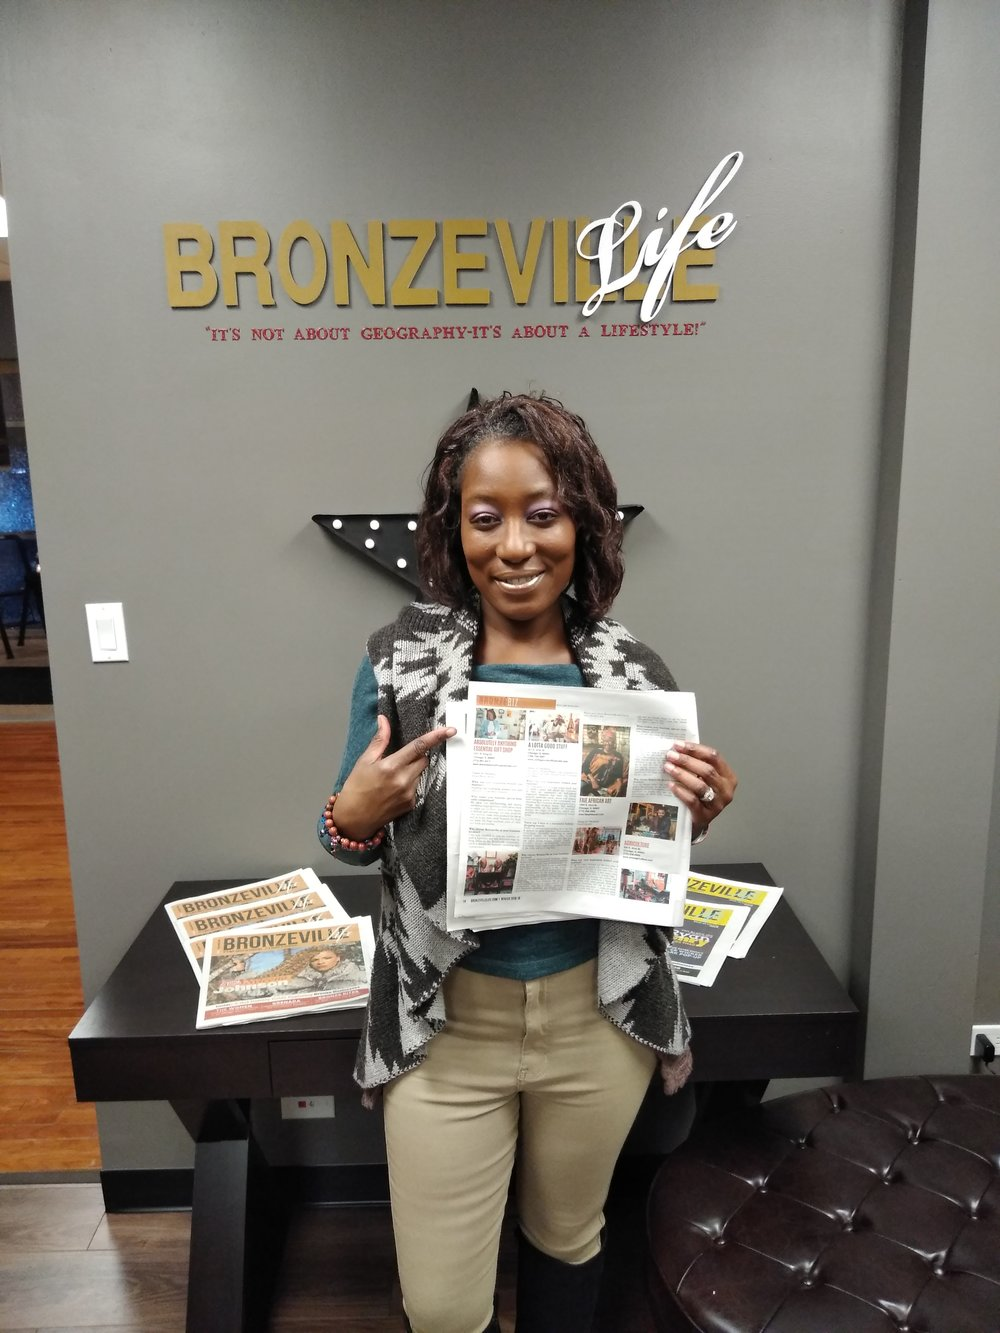 Owner Kenya Renee Reaves shows off her business being highlighted in Chicago's new Bronzeville Life Newspaper. Public Relations Professional, Jada Russell, in collaboration with Quad Communities Development Corporation of Chicago made this dream come true. ~Thank you Defender Charities.